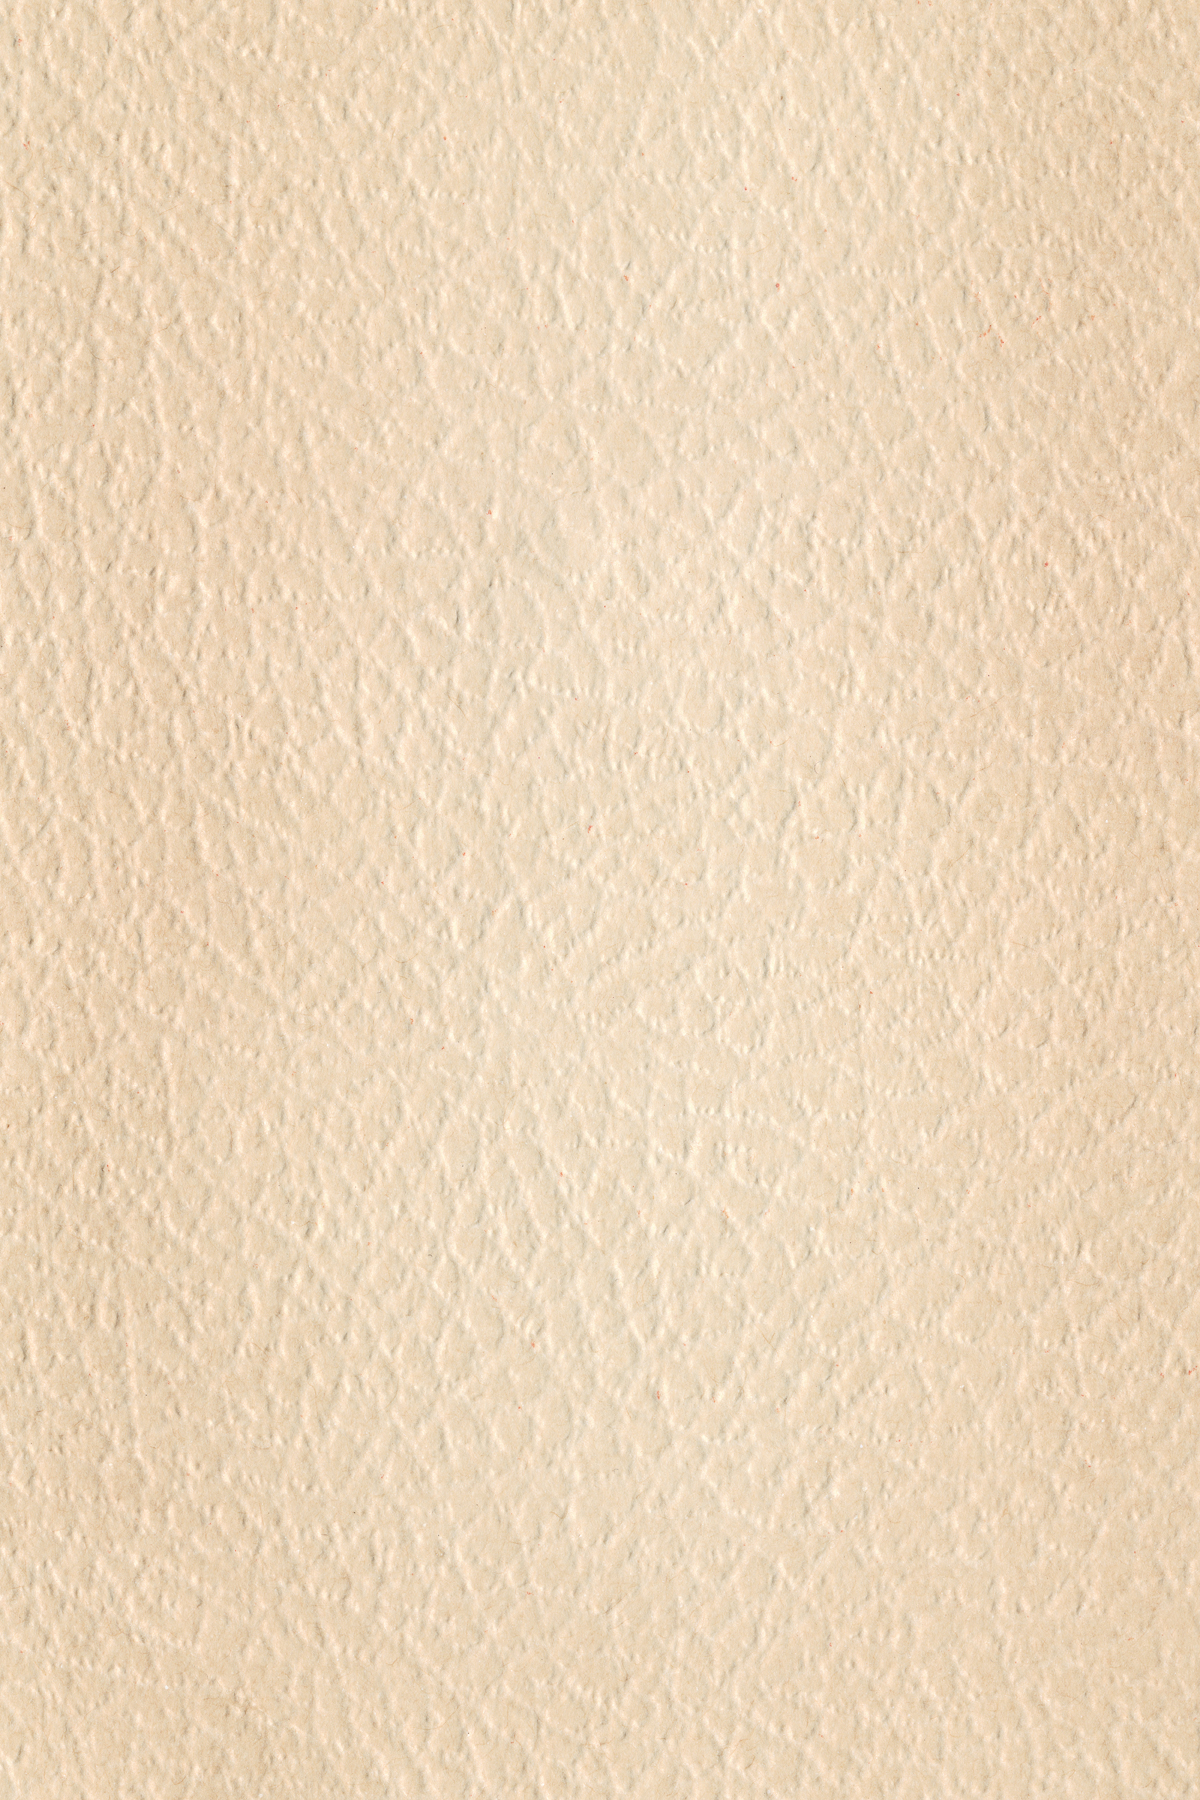 Paper Texture - White Leather, Backdrop, Stationery, Scrapbook, Scrapbooking, HQ Photo